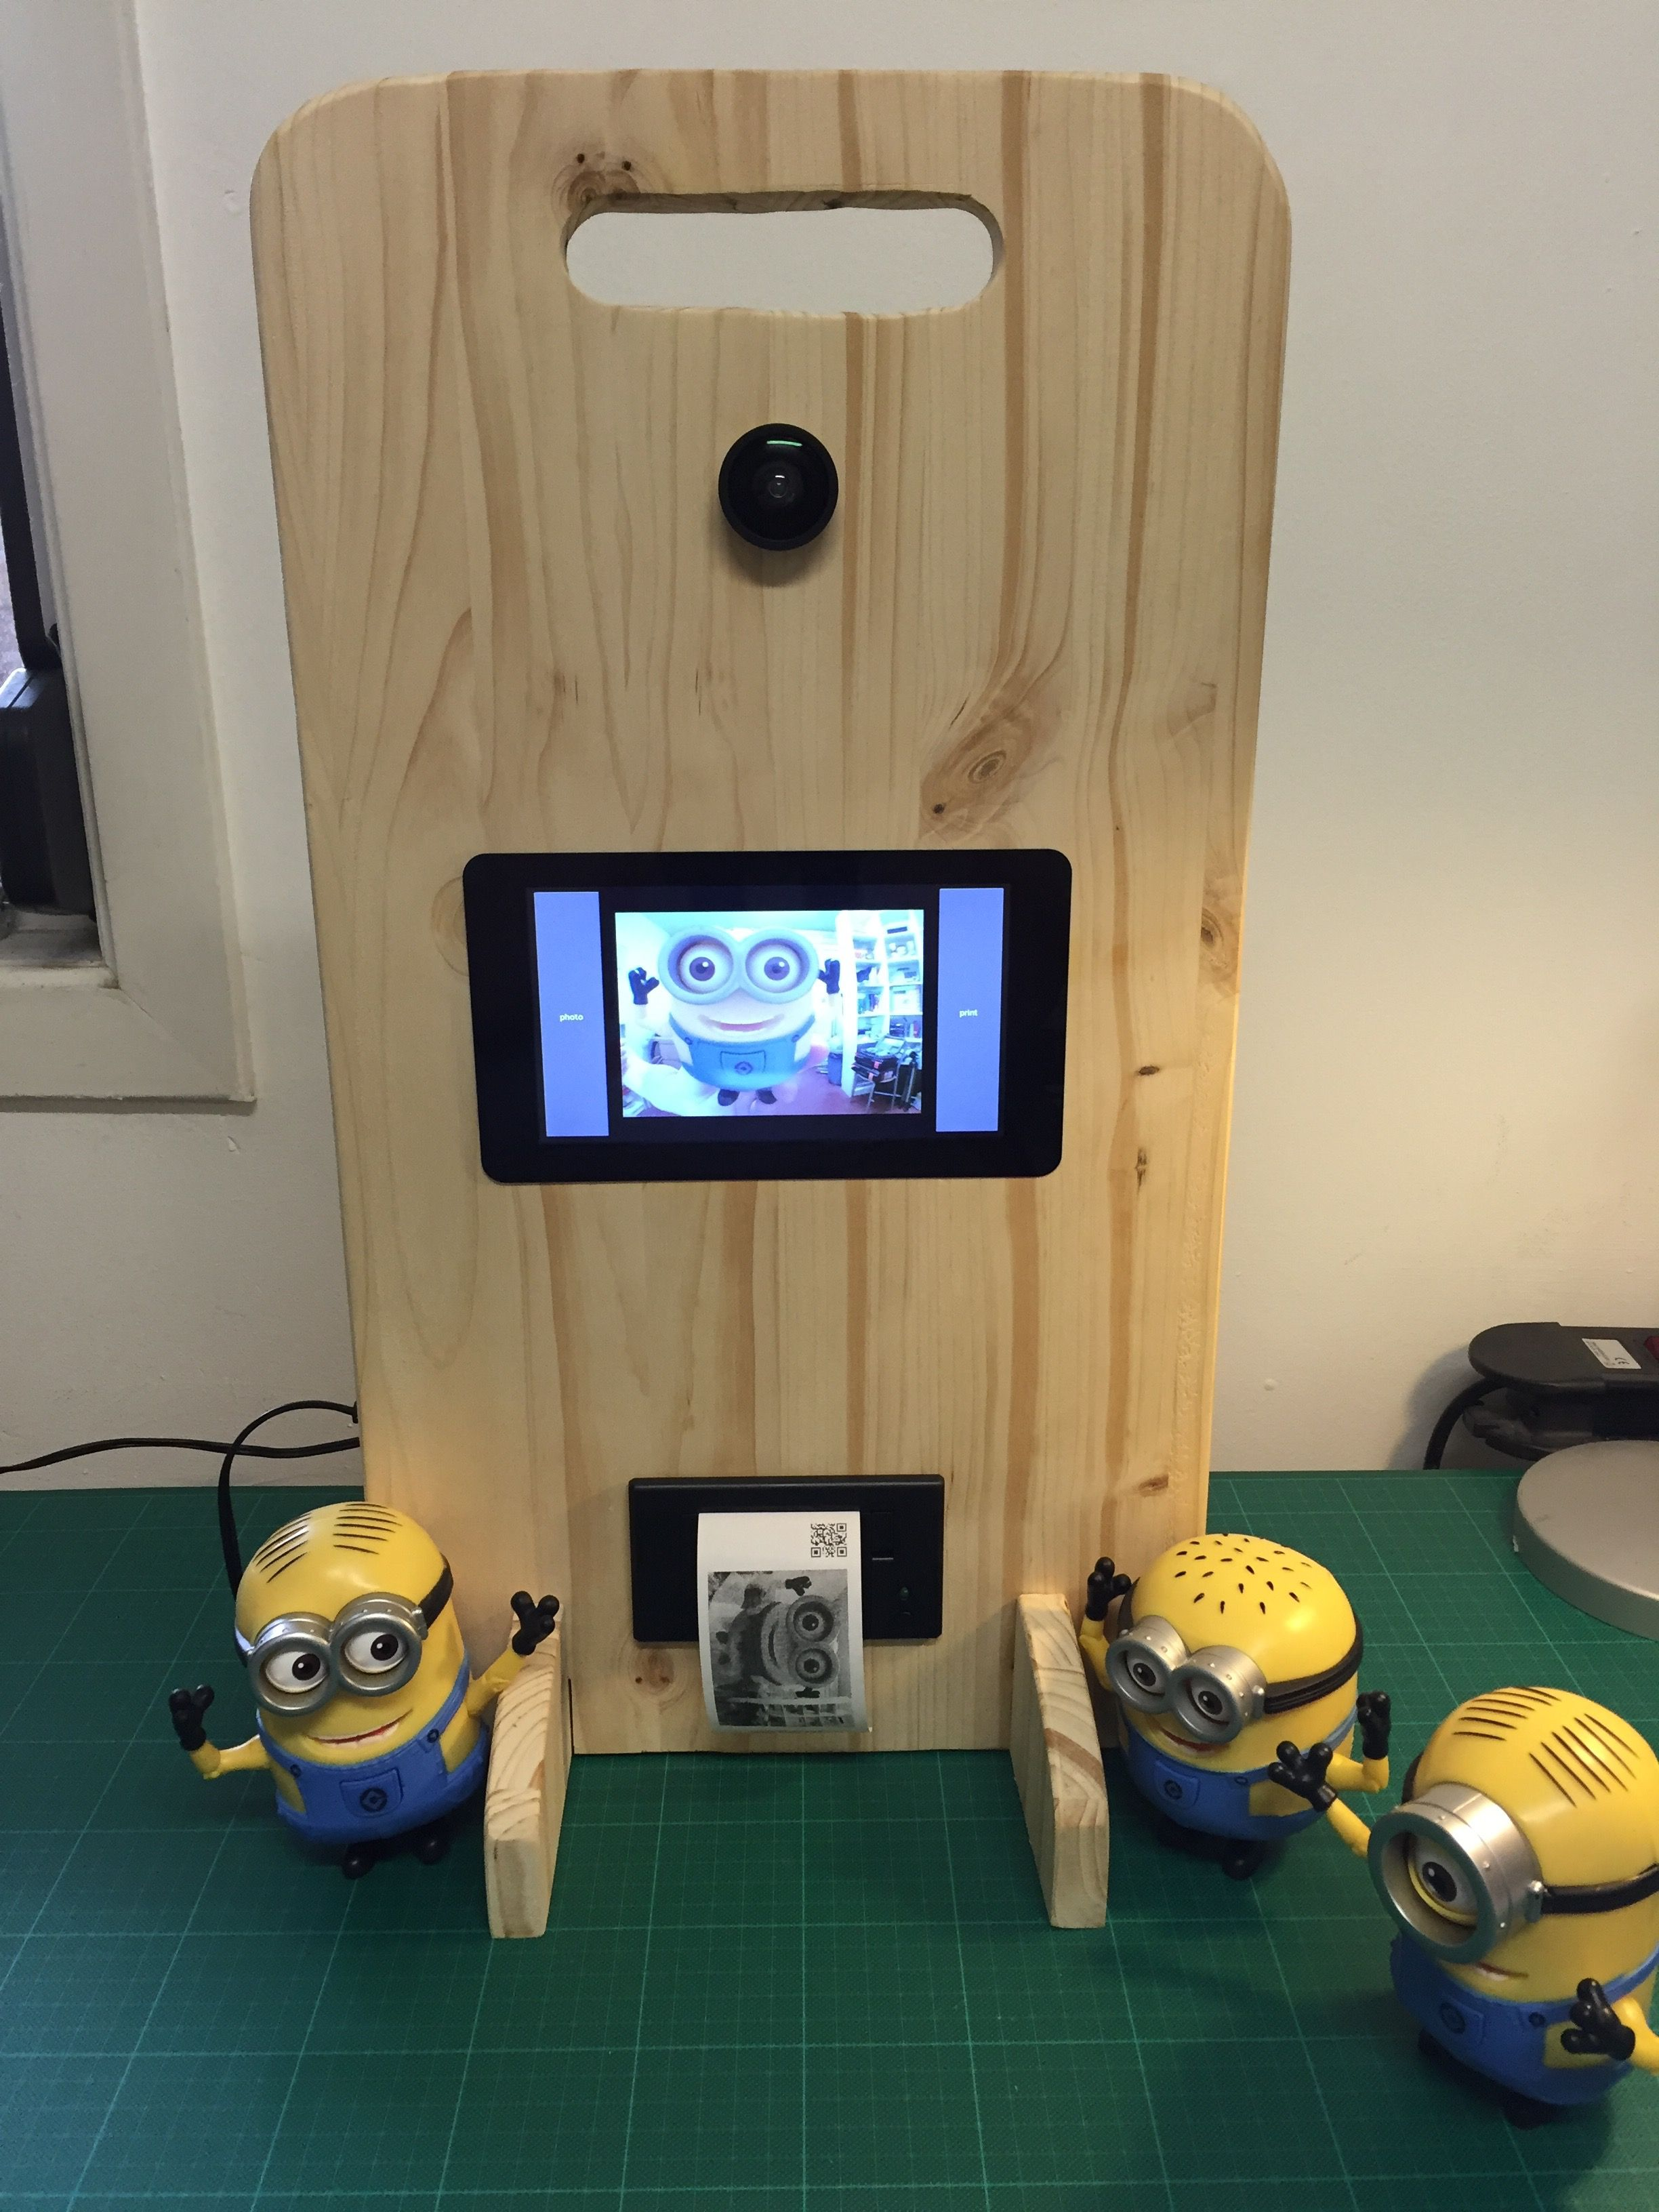 Photobooth Maison Raspberry Pi Photo Booth With Touch Screen Thermal Printer